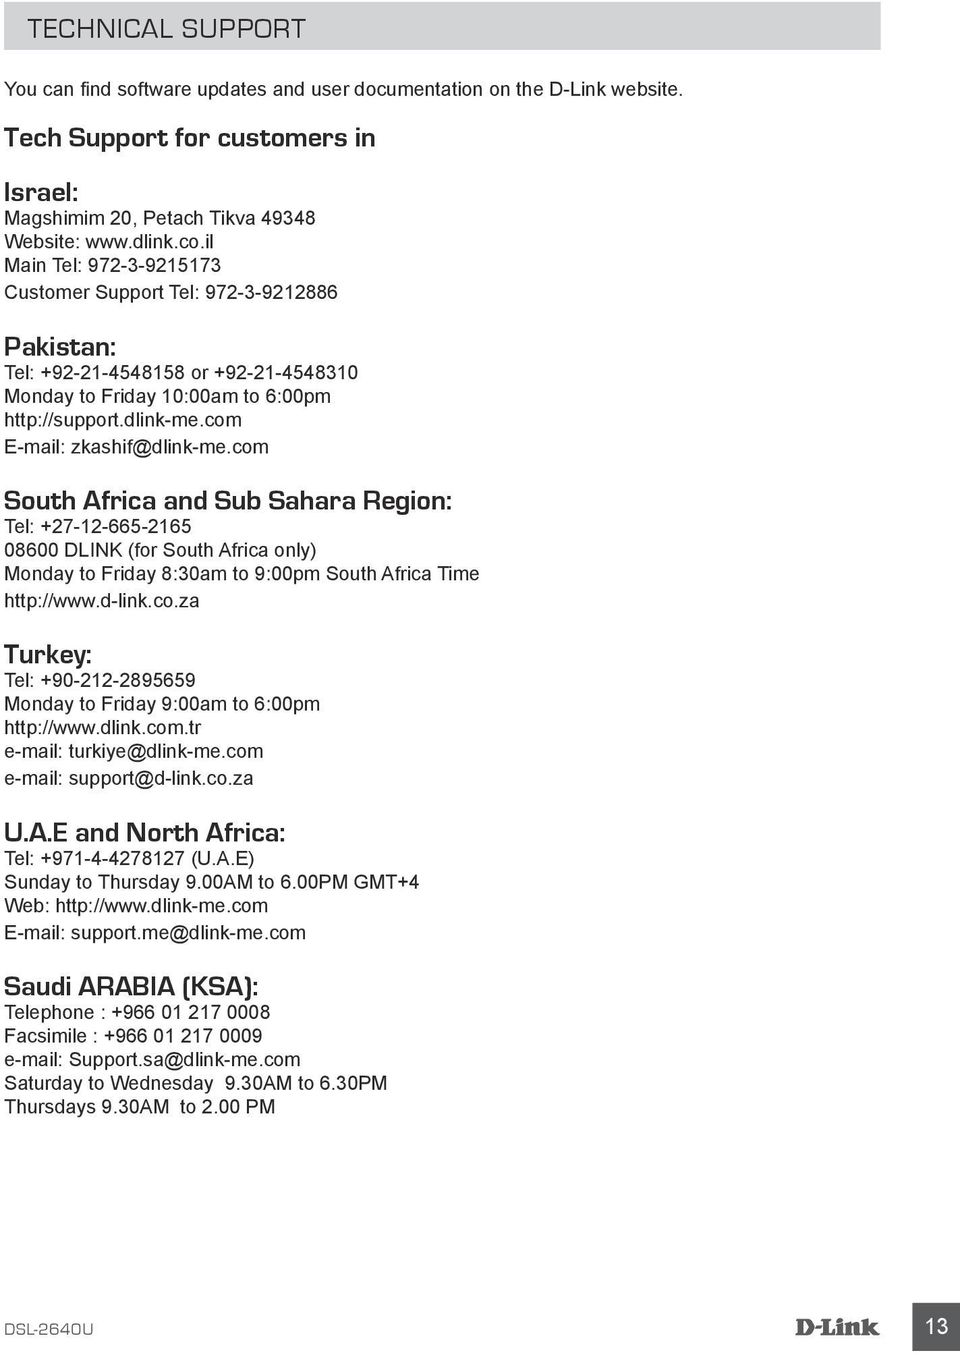 com South Africa and Sub Sahara Region: Tel: +27-12-665-2165 08600 DLINK (for South Africa only) Monday to Friday 8:30am to 9:00pm South Africa Time http://www.d-link.co.za Turkey: Tel: +90-212-2895659 Monday to Friday 9:00am to 6:00pm http://www.